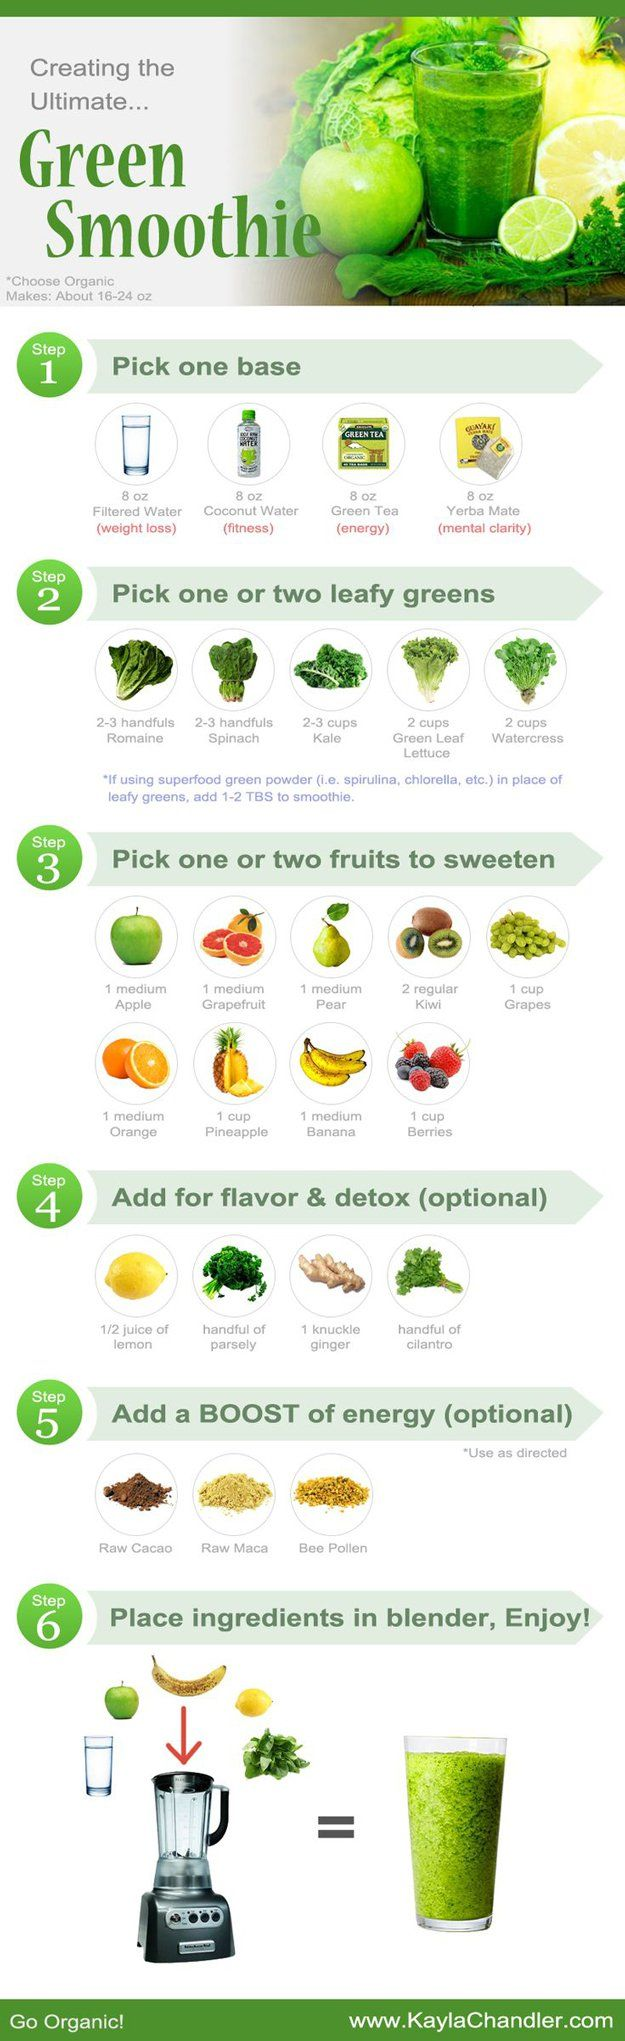 Detoxifying Energy Boosting Smoothies is part of Green smoothie - Looking for detox smoothies to boost your energy  Whether you need a cleanse or want to lose some weight, there's a detox smoothie recipe that you'll love!